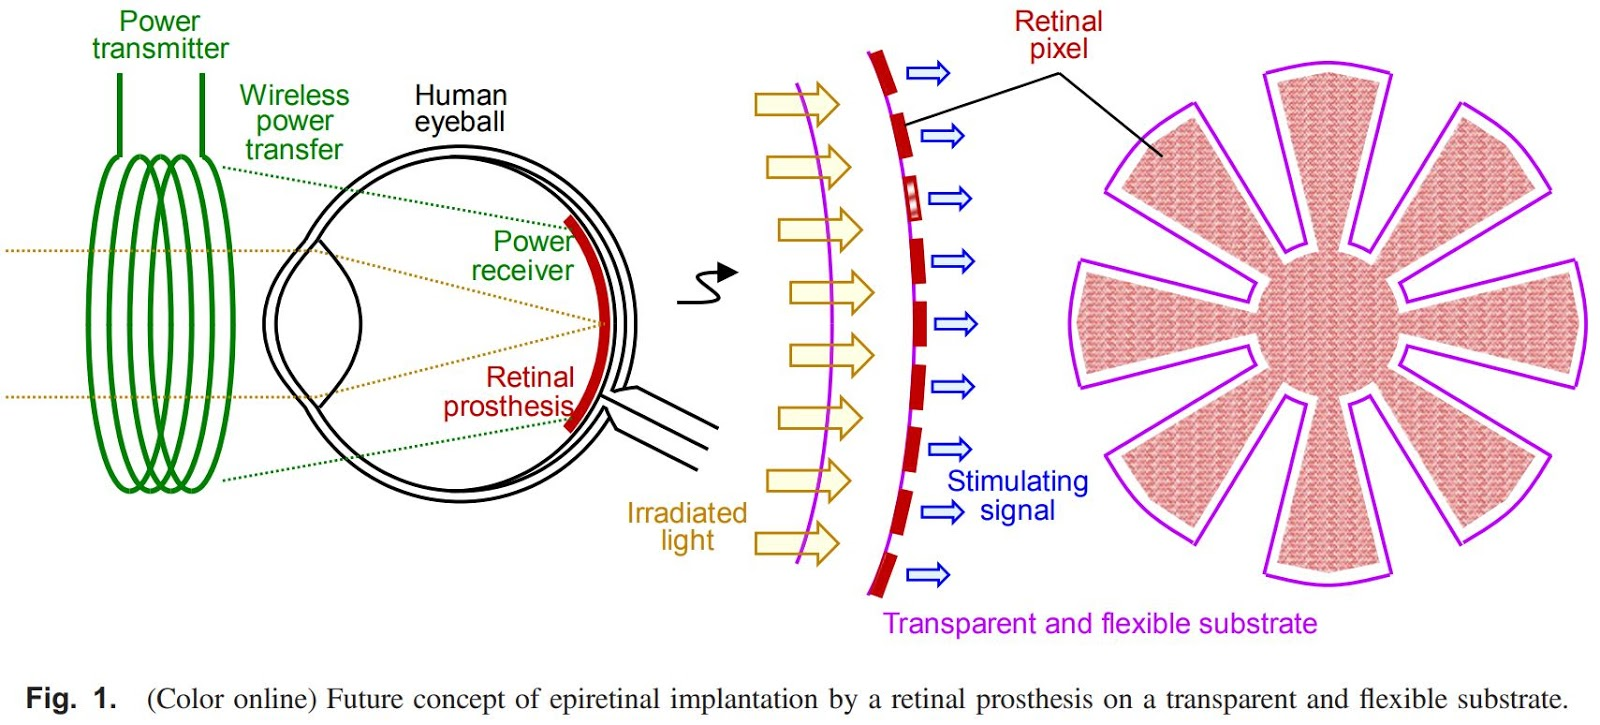 Image Sensors World Tft Sensor For Retinal Prosthesis Wireless Power Transmitter Circuit By Assembling The Photosensing And Transfer System Stimulating Performance Is Confirmed In An Vitro Experiment